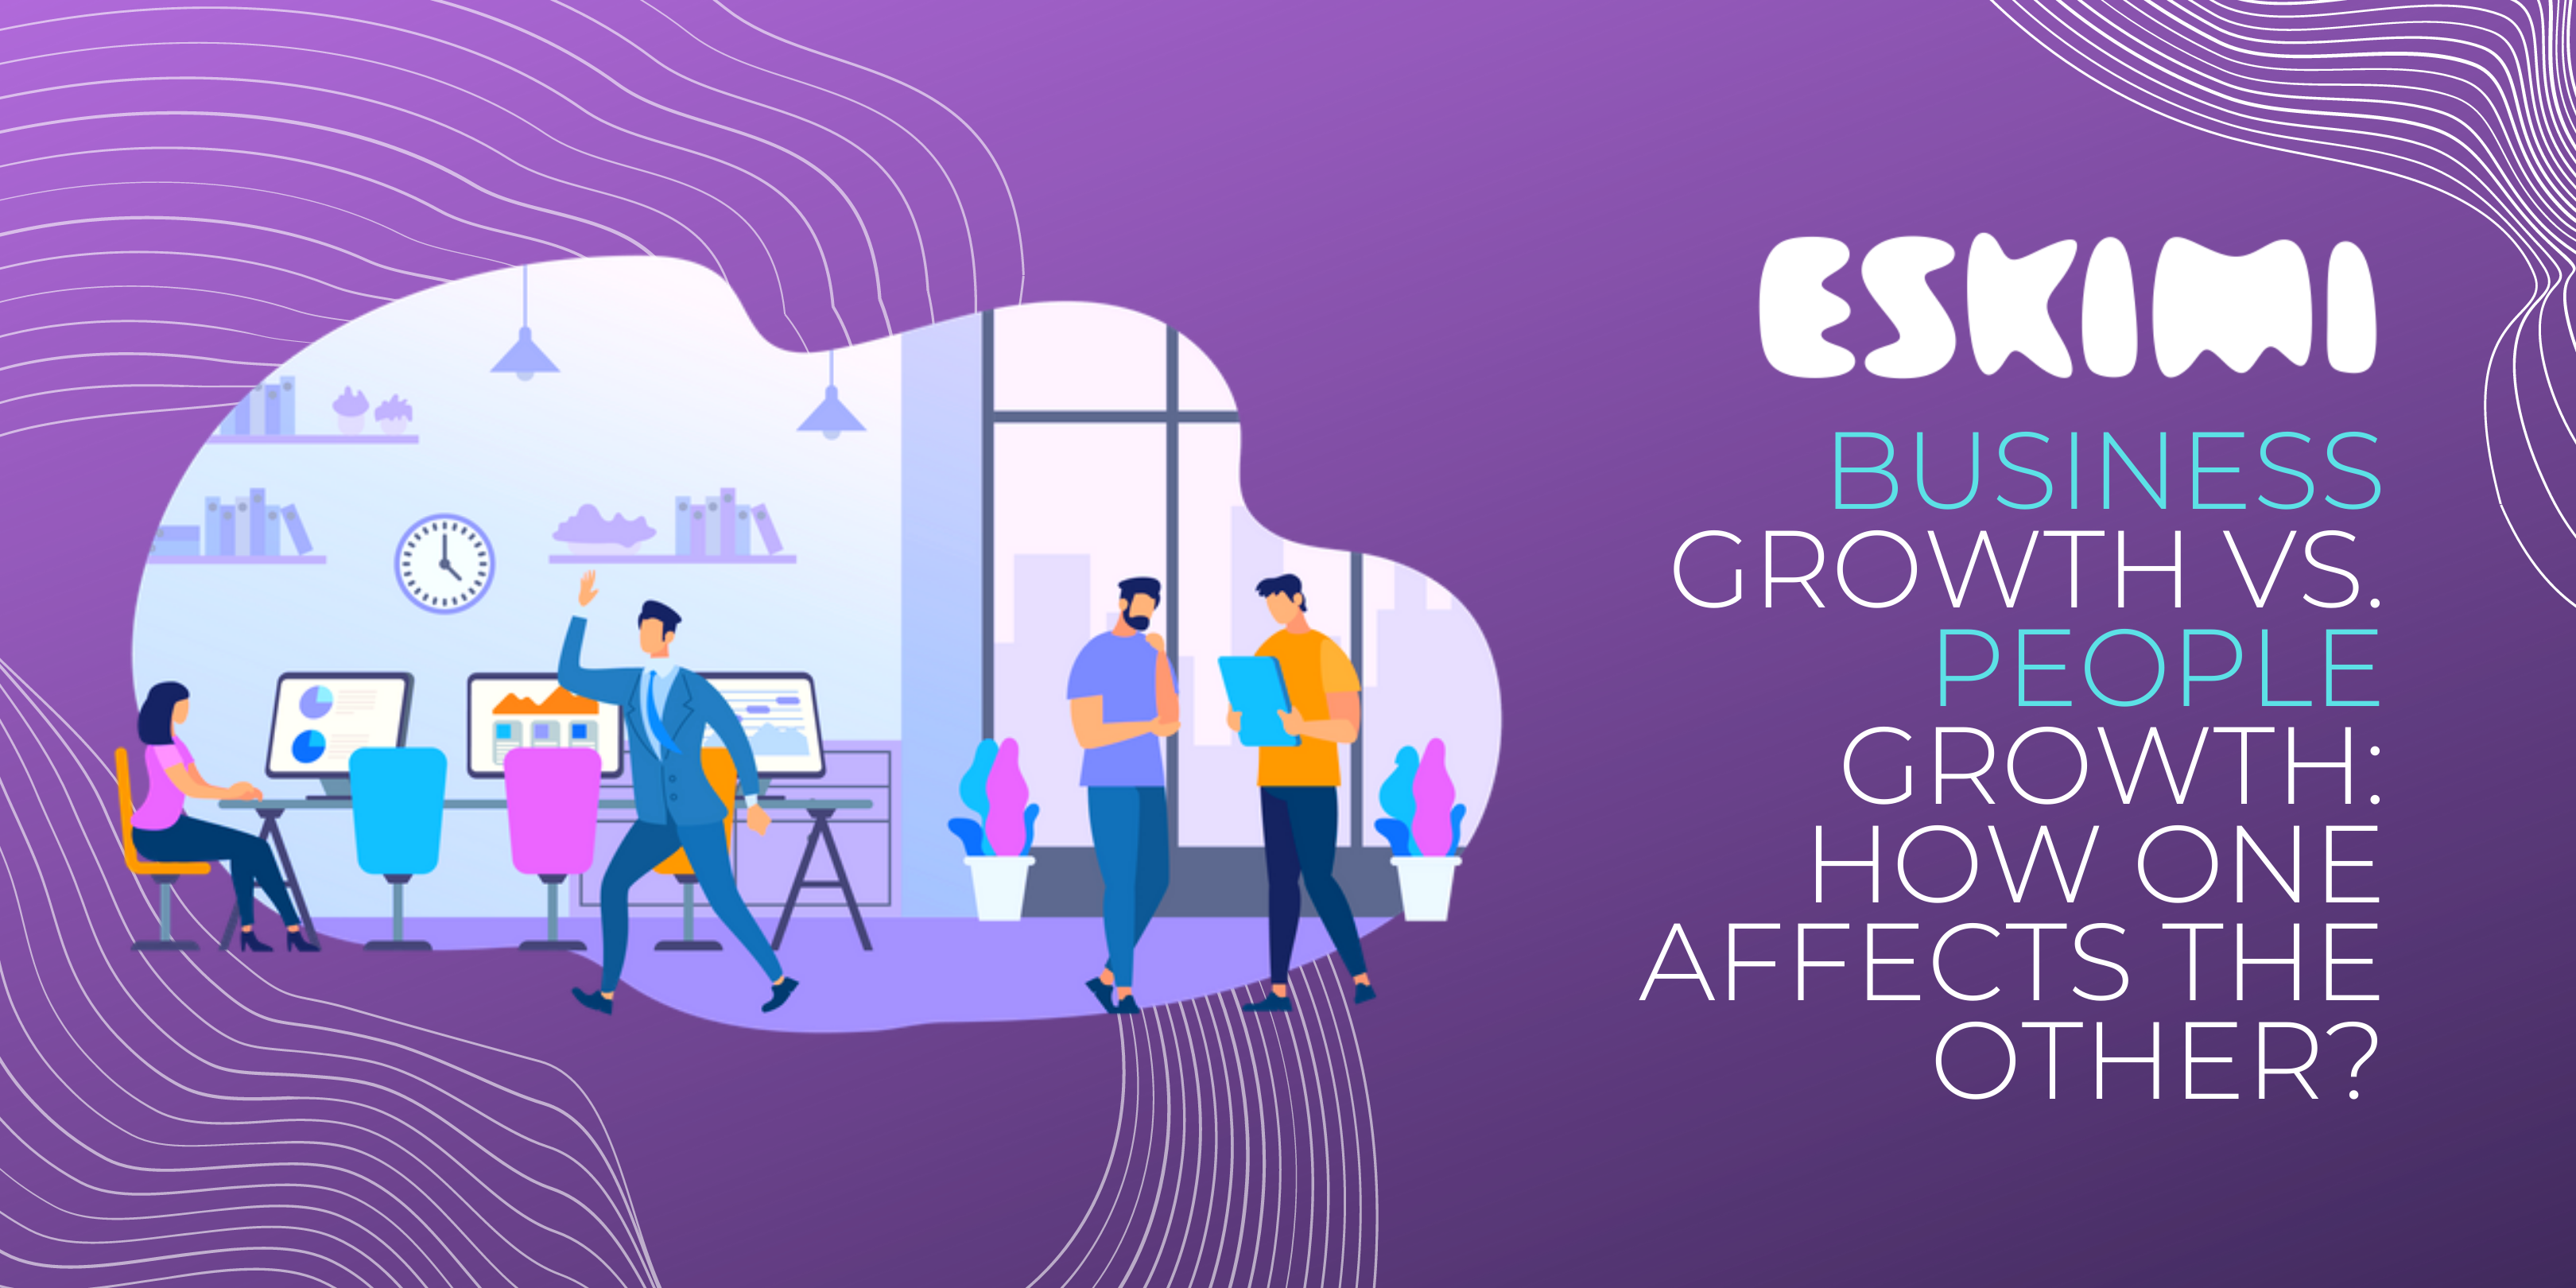 Business Growth vs. People Growth: How One Affects the Other?